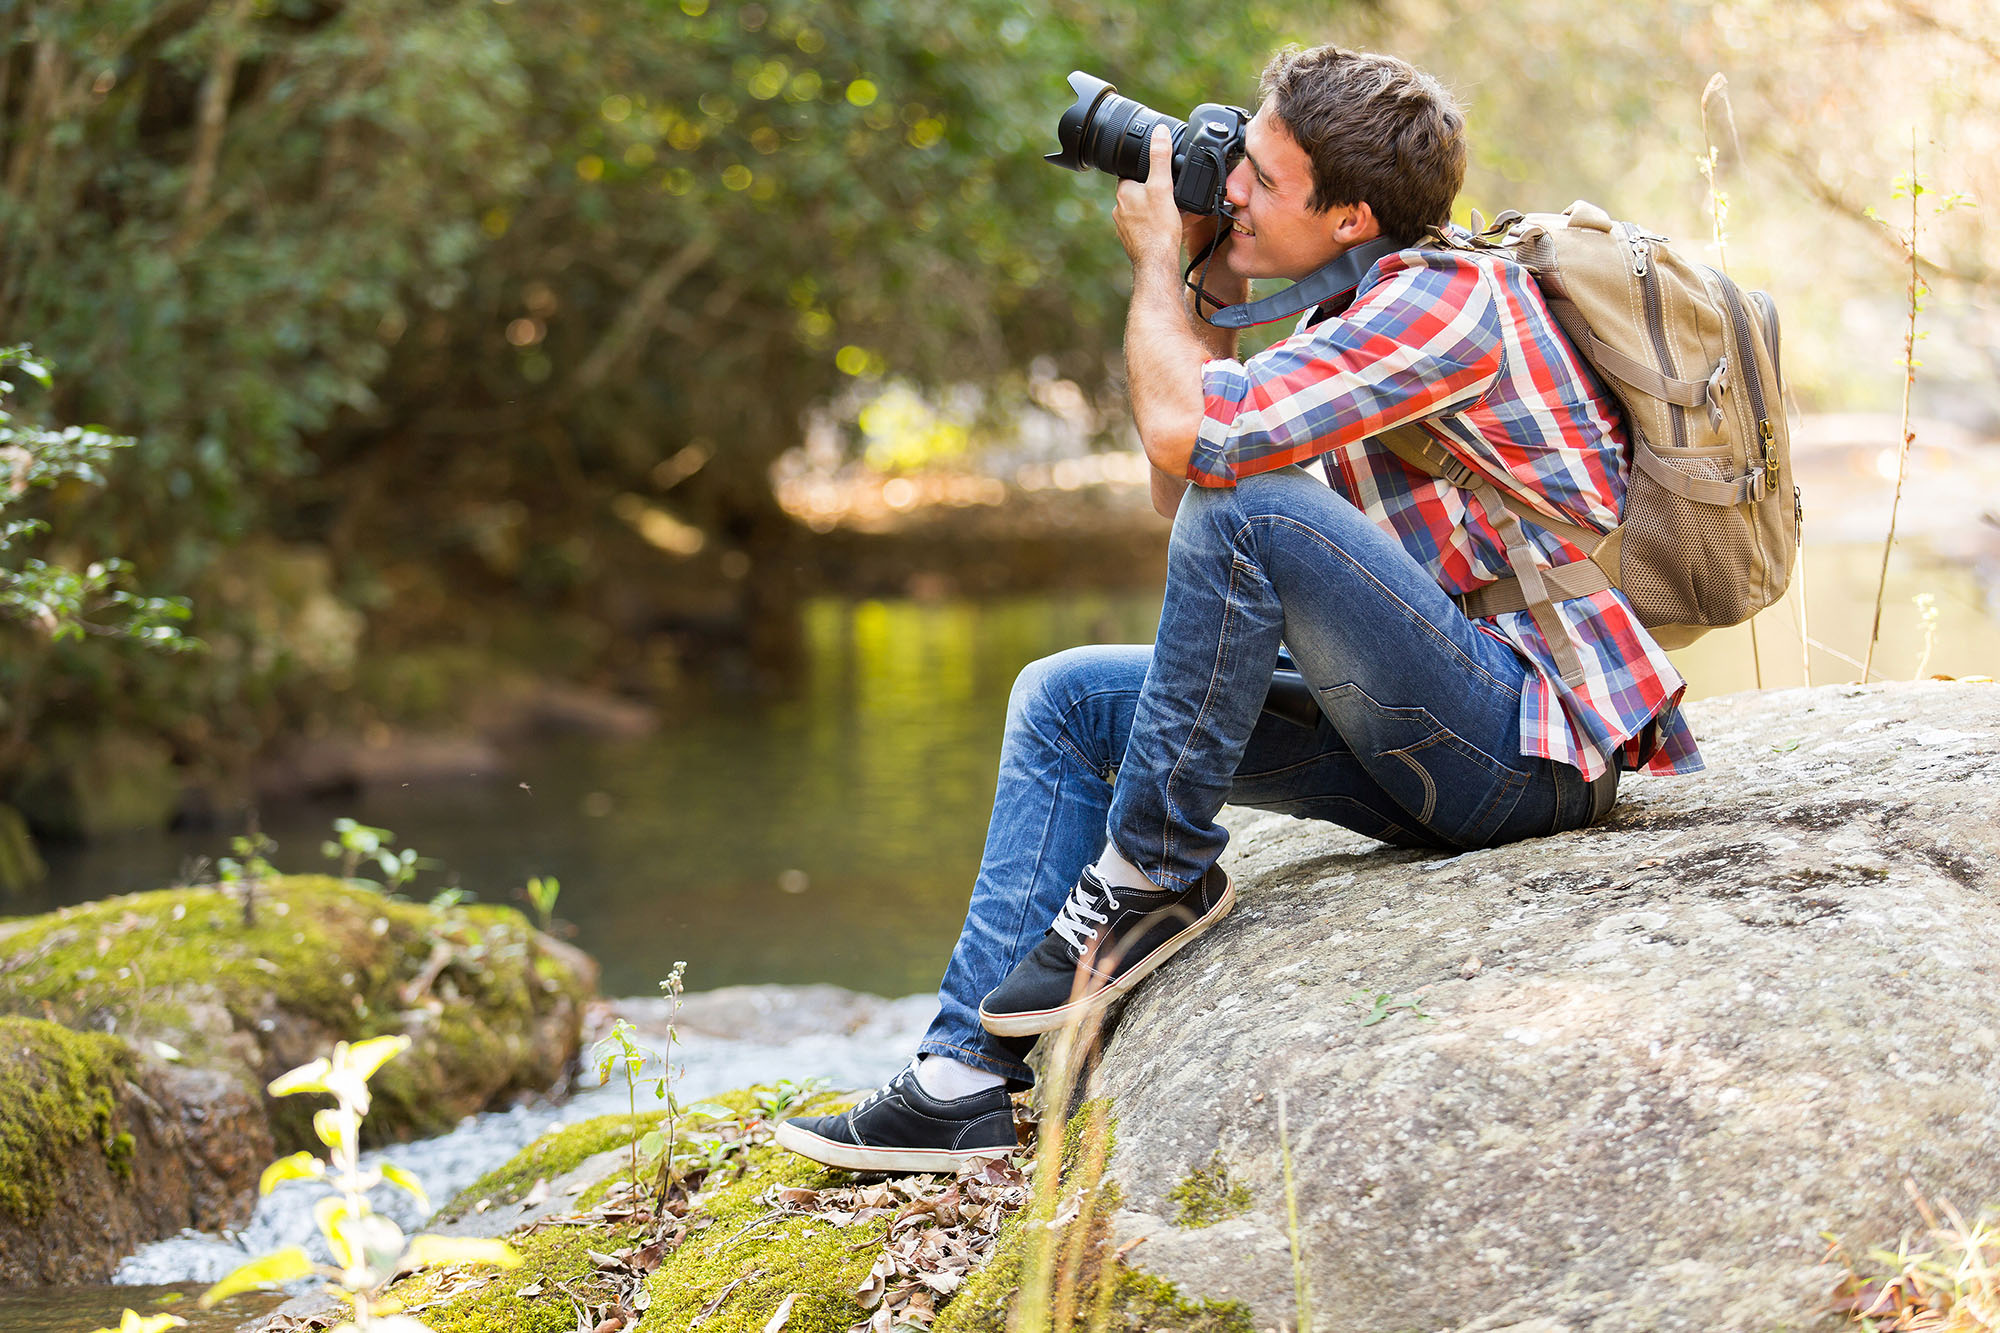 View our roundup of the best mirrorless cameras for bird photography. Photo by michaeljung/Shutterstock